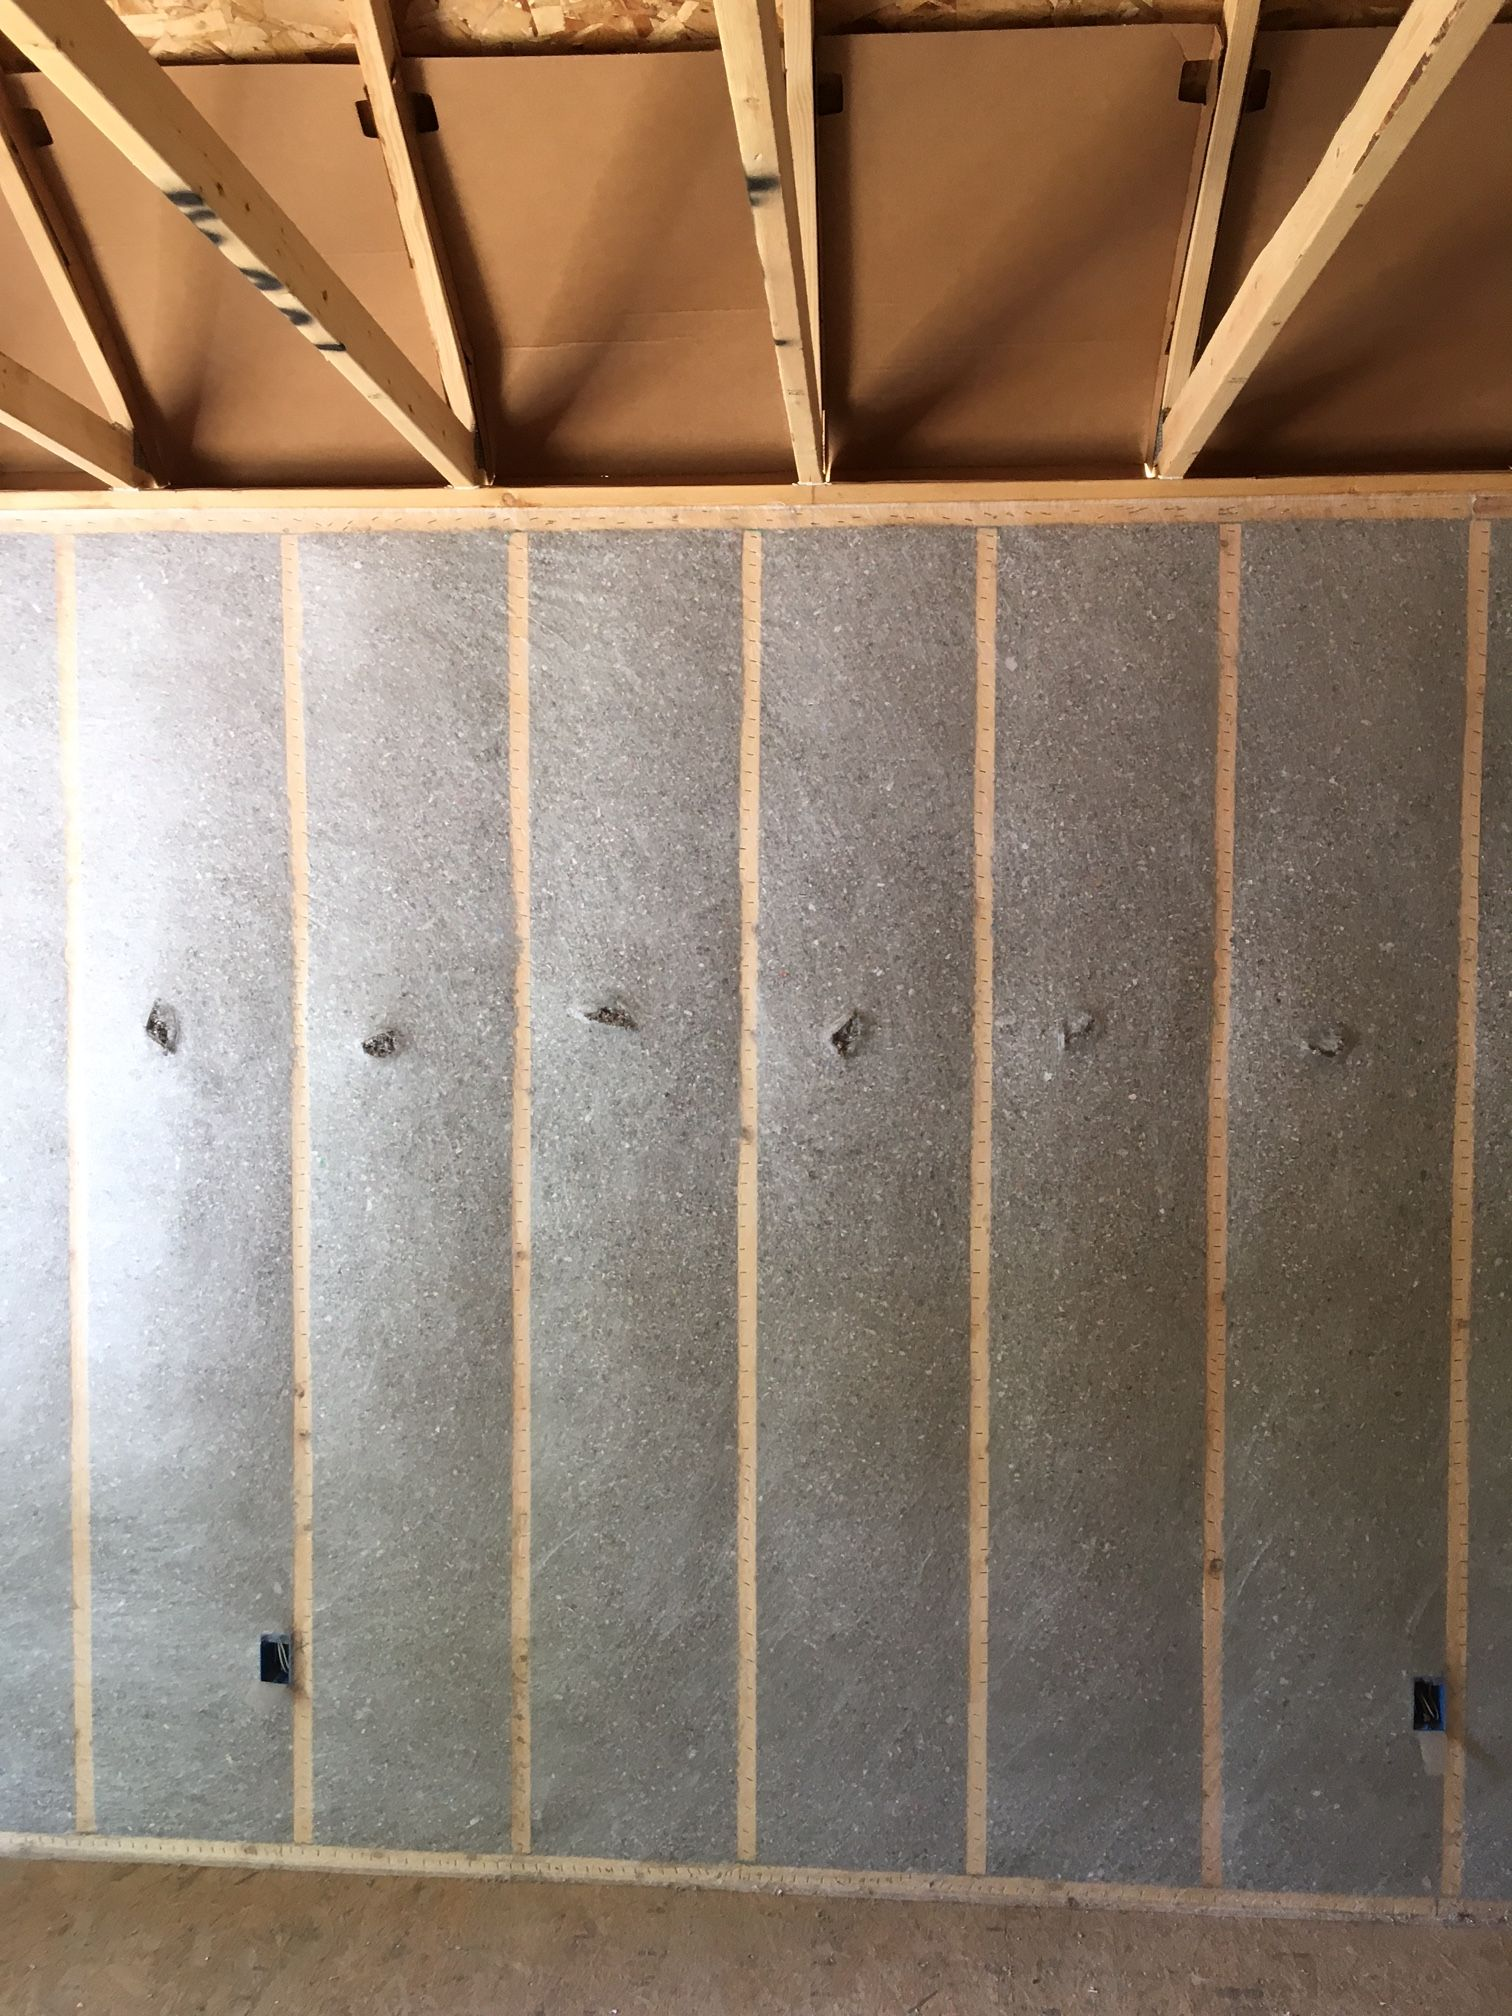 Cellulose (With images) Spray foam, Energy audit, Attic